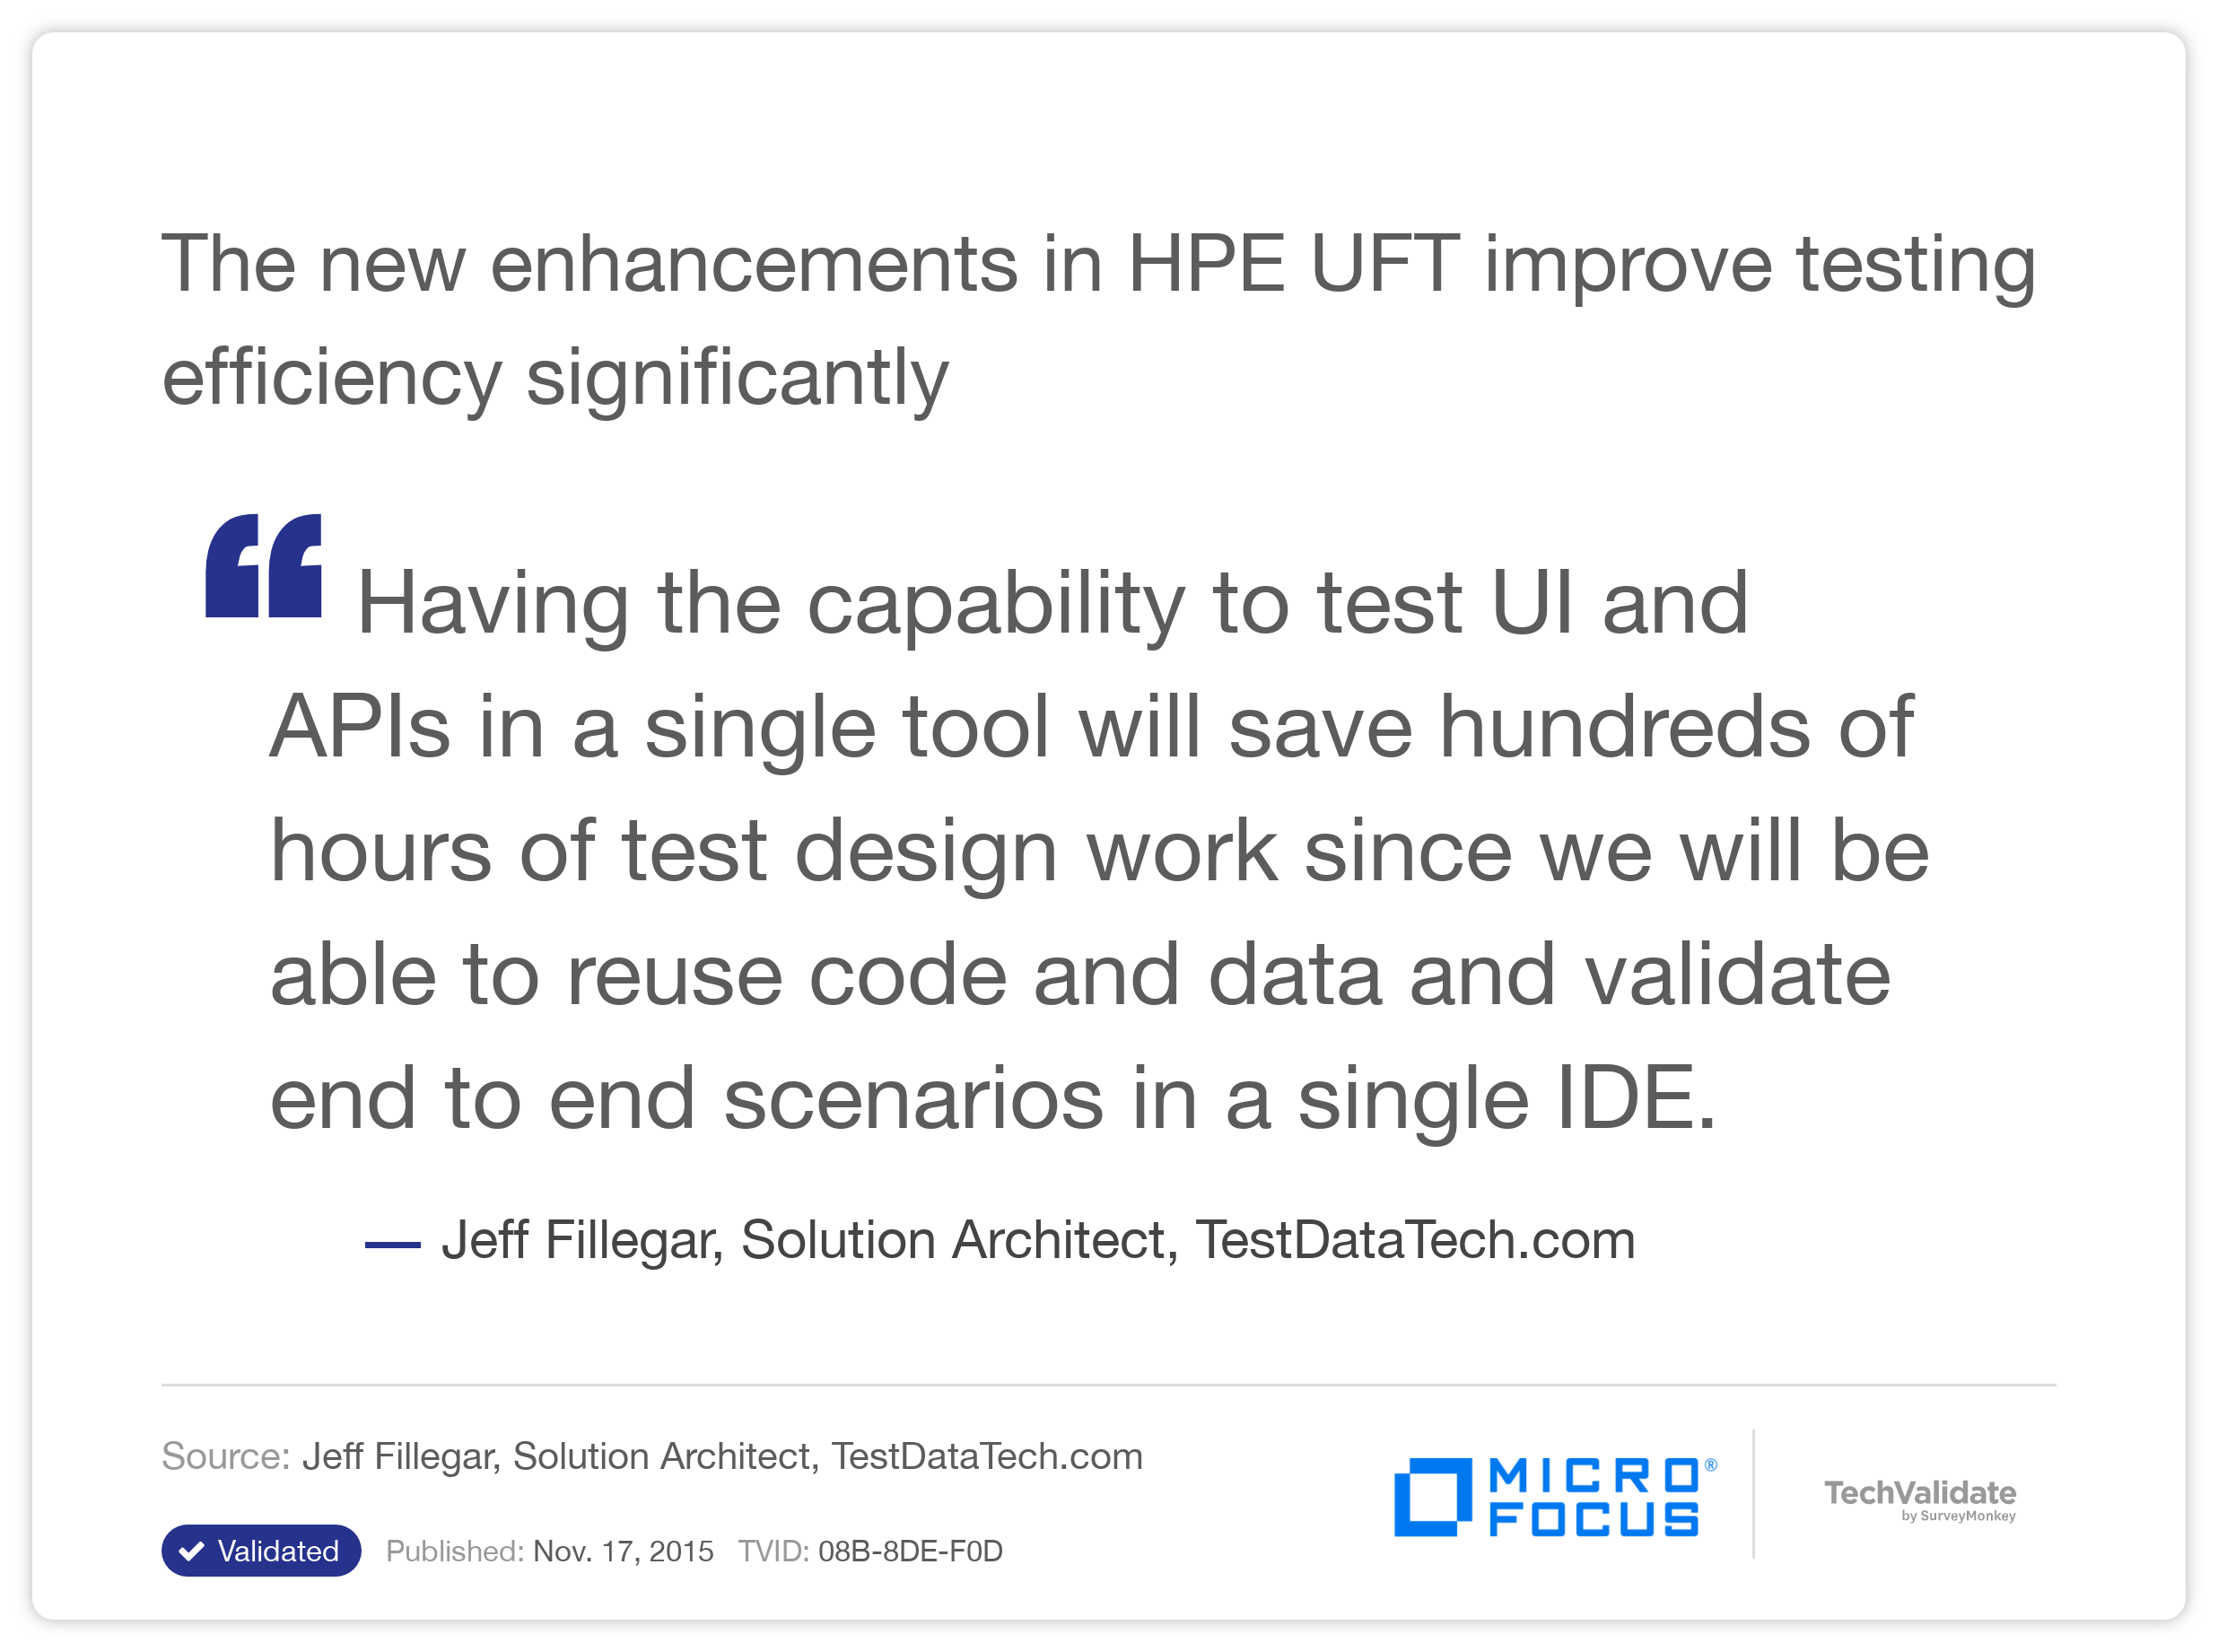 The new enhancements in HP UFT improve testing efficiency significantly